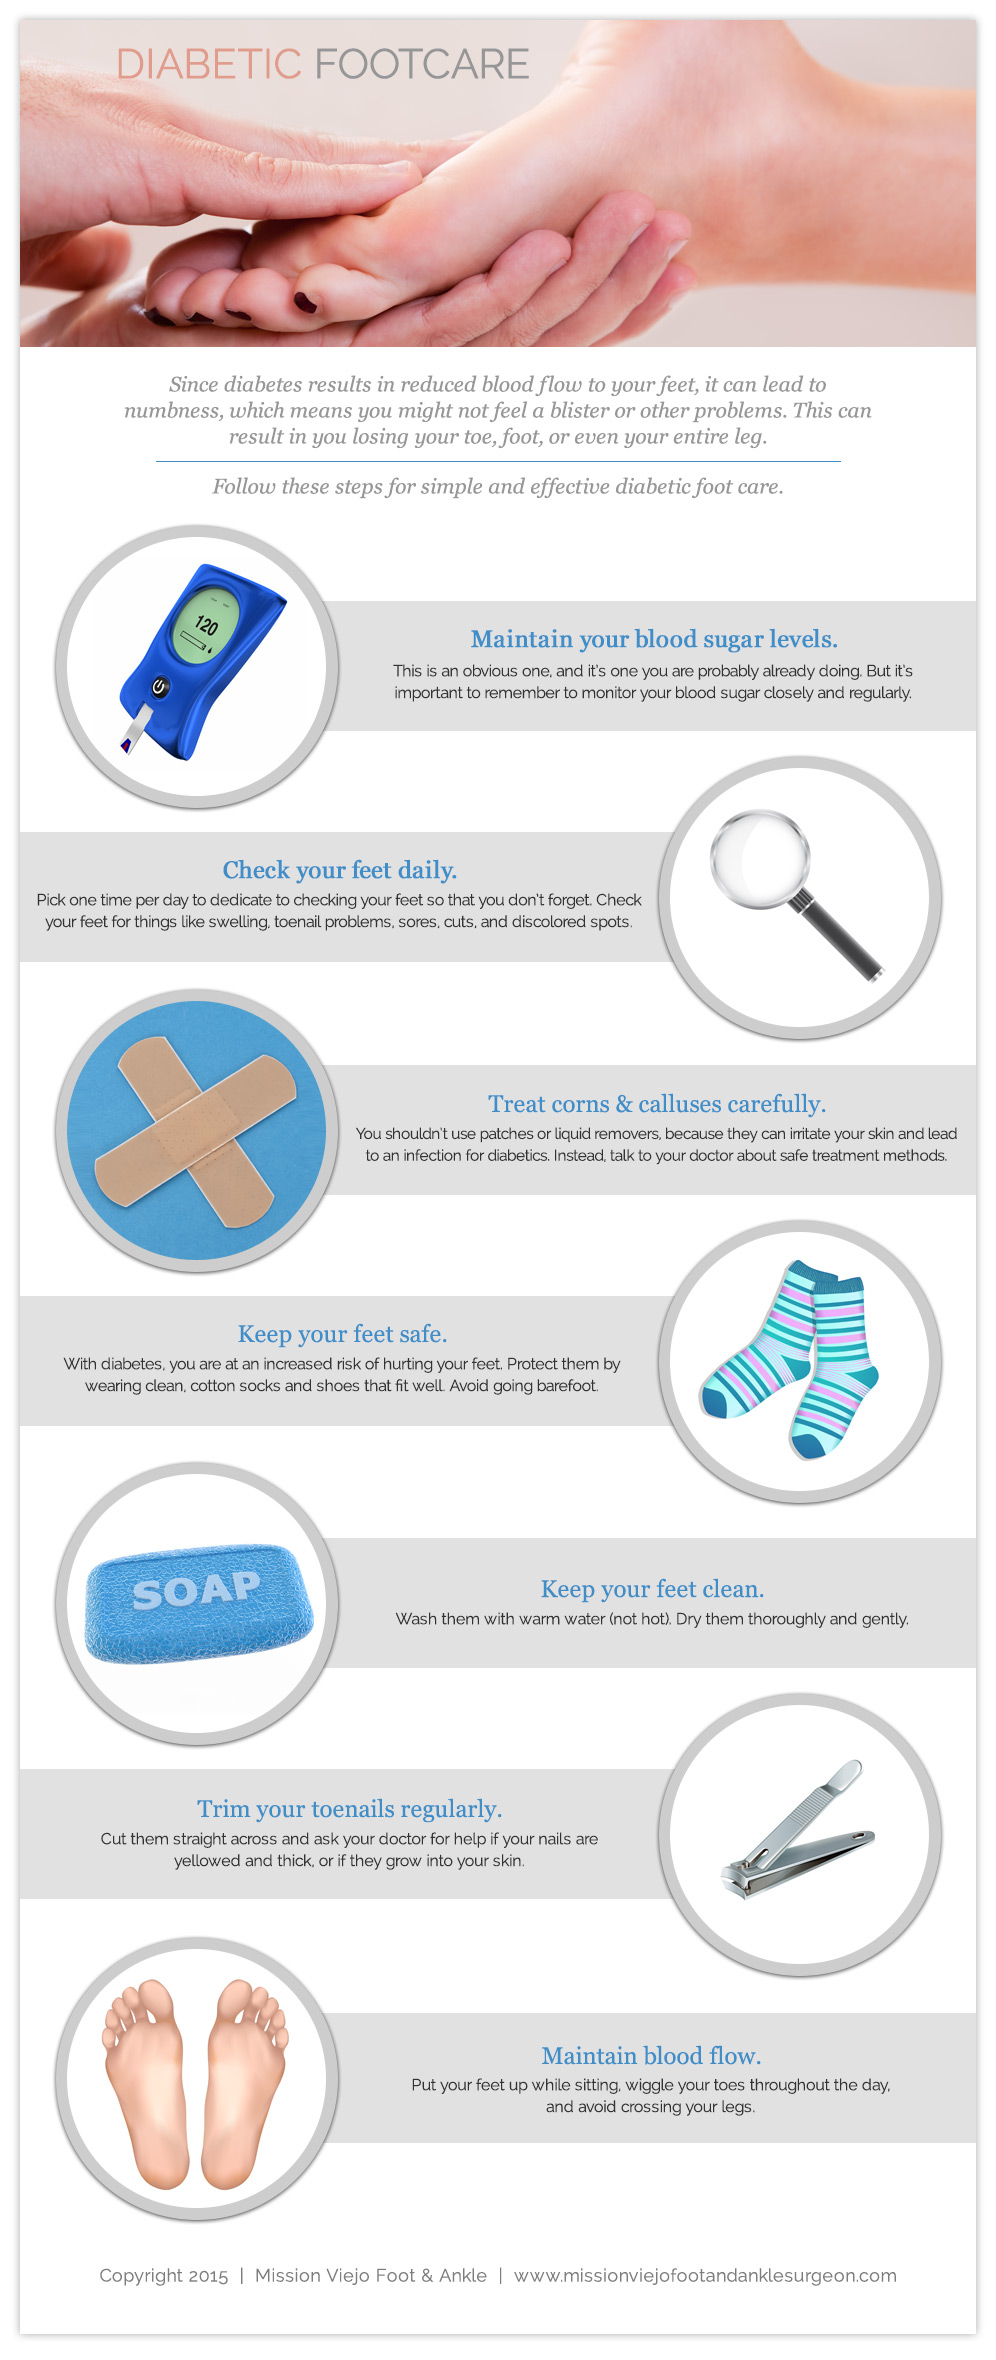 Diabetic-Footcare-by-Mission-Viejo-FootAnkle-infographic-plaza